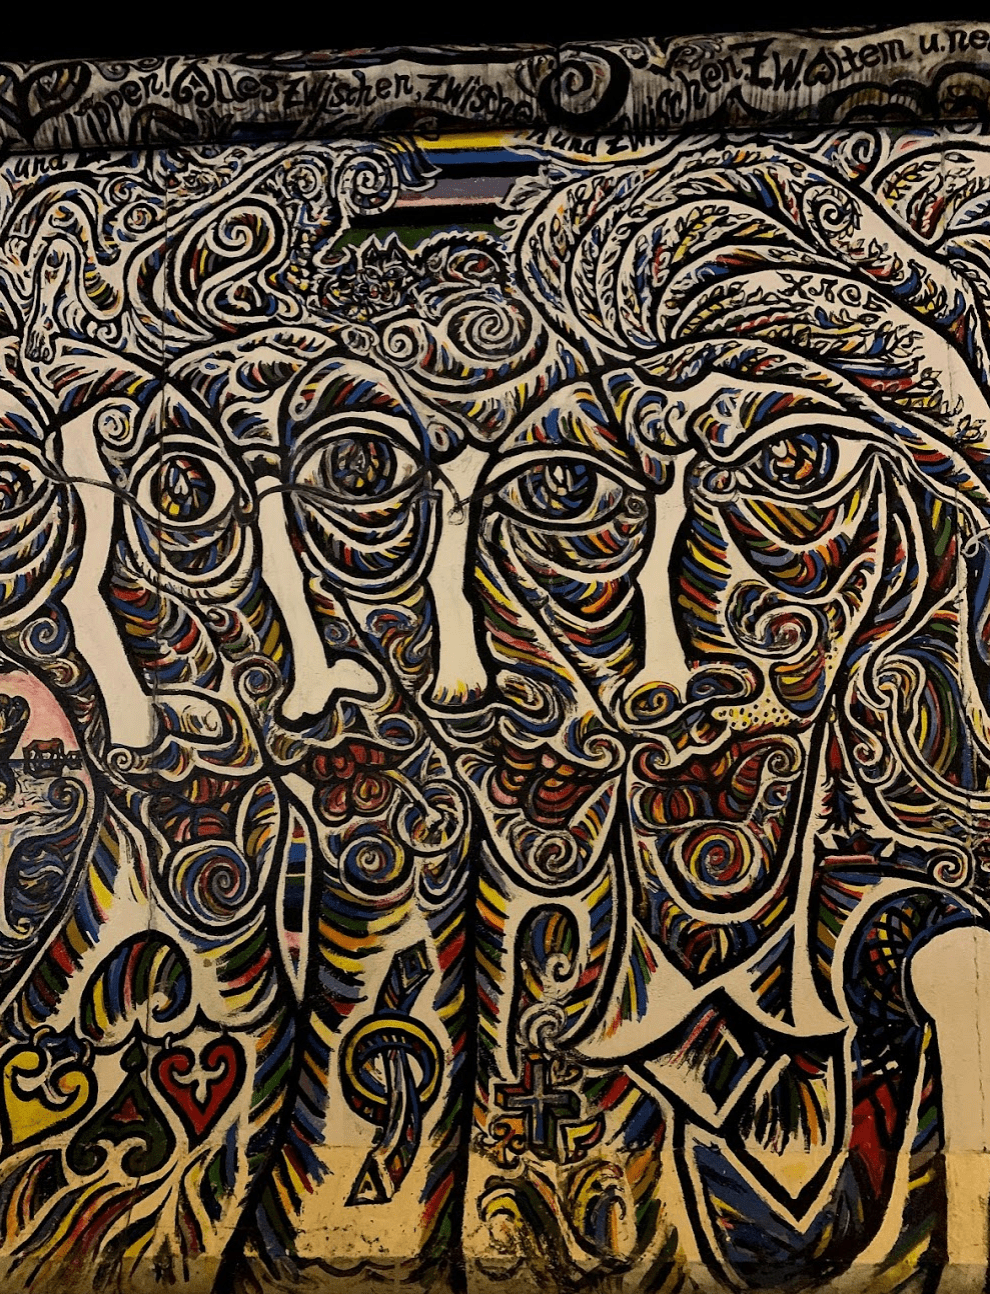 Mural from the East Side Gallery